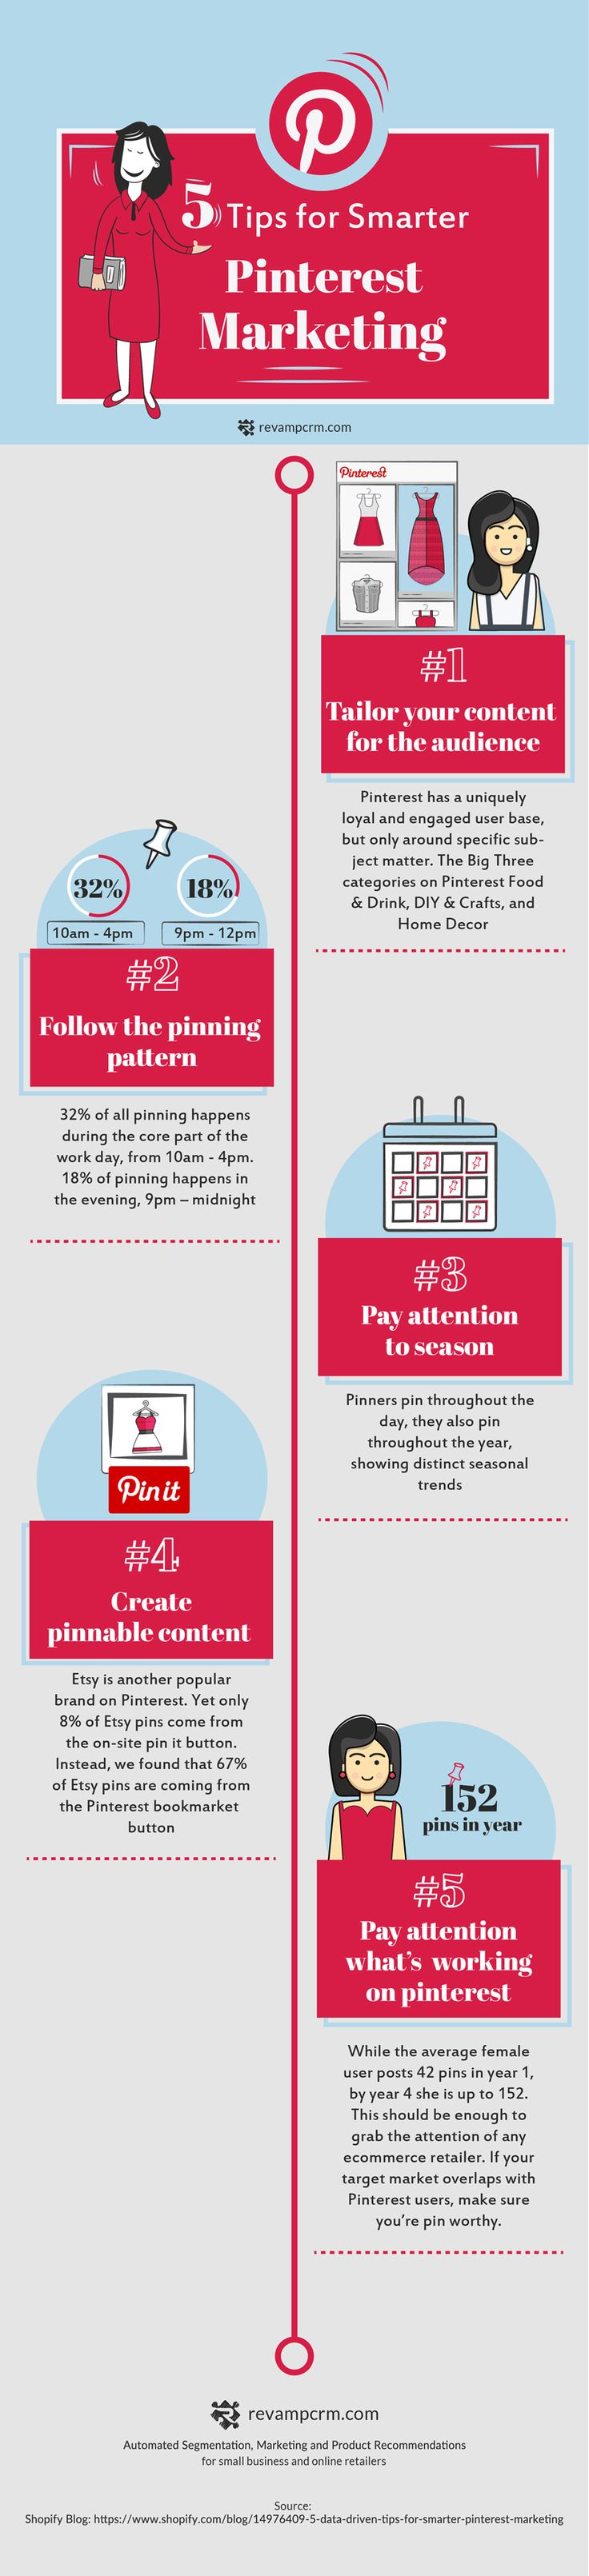 5 Tips for Smarter Pinterest Marketing - infographic AND Take this Free Full Lenght Video Training on HOW to Start an Online Business